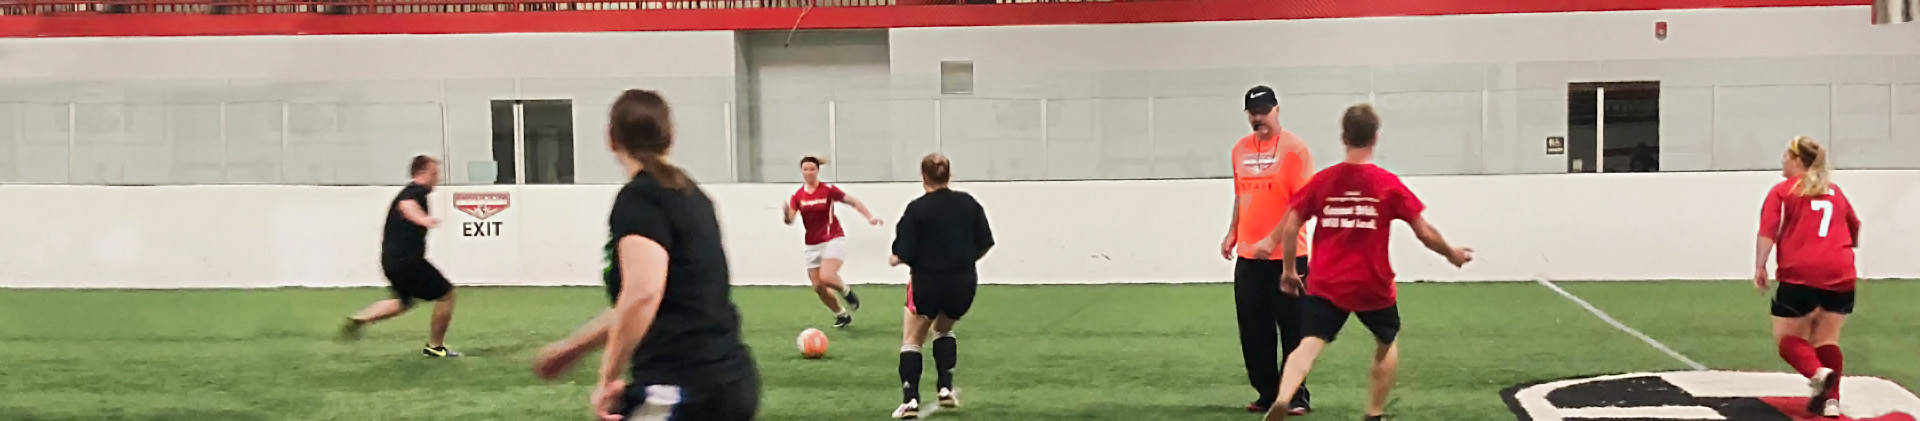 Coed adult soccer league